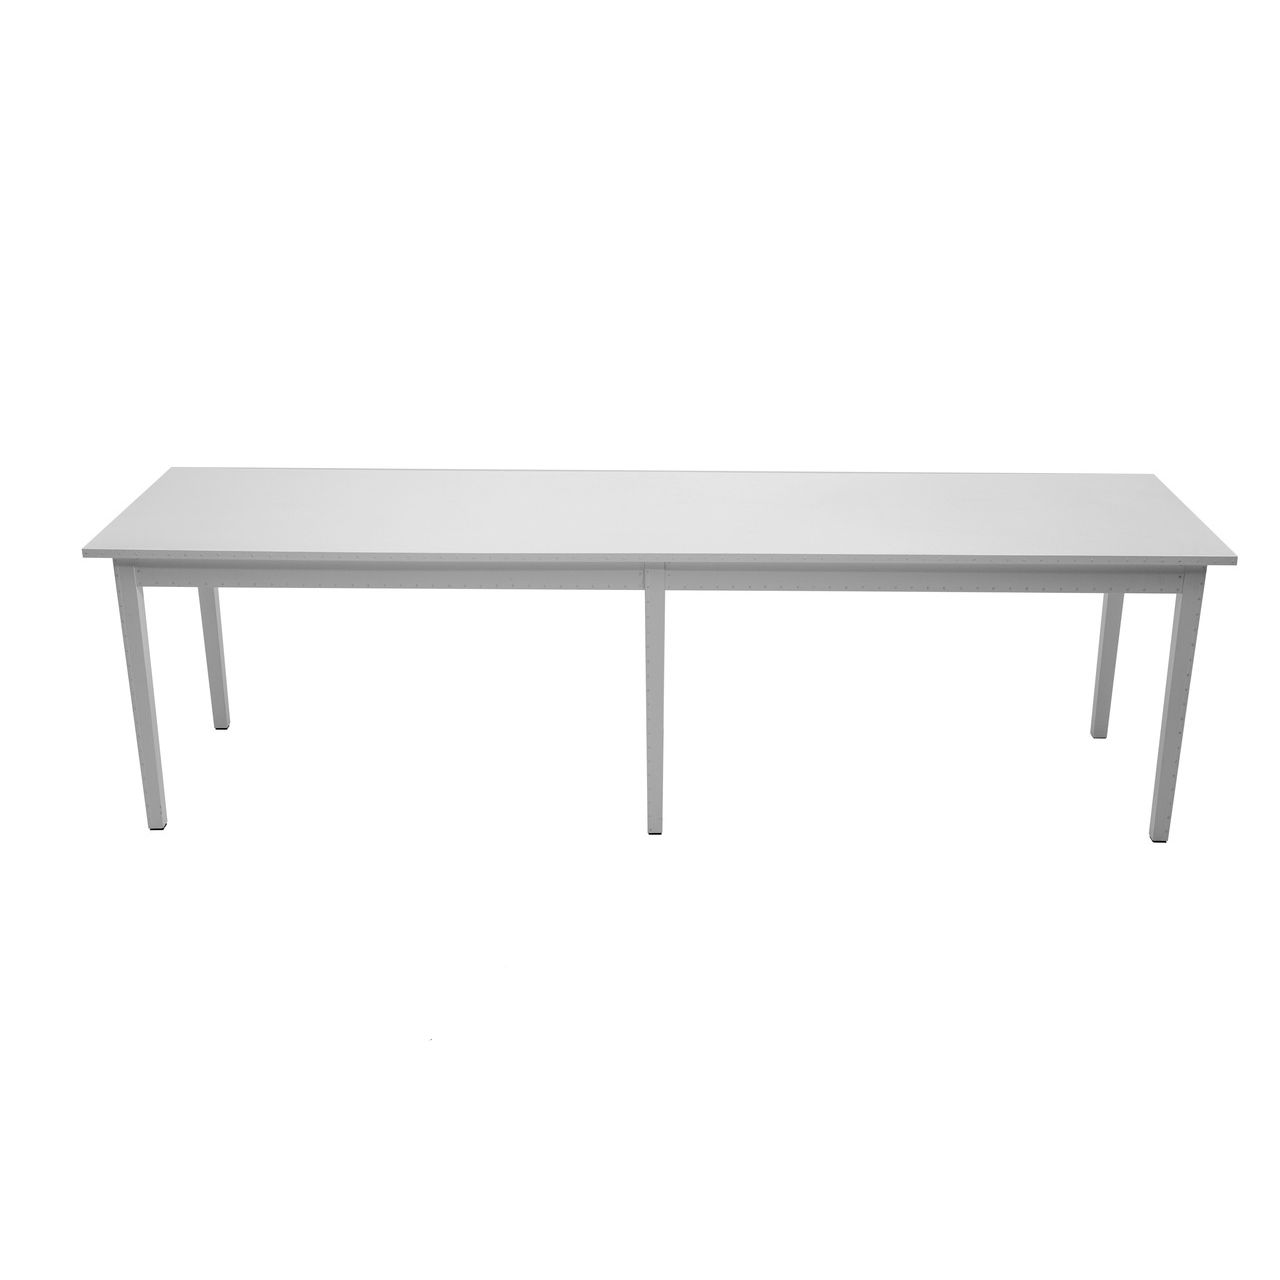 Table Blanche Moderner Tisch Lackiertes Holz Rechteckig Table Blanche By